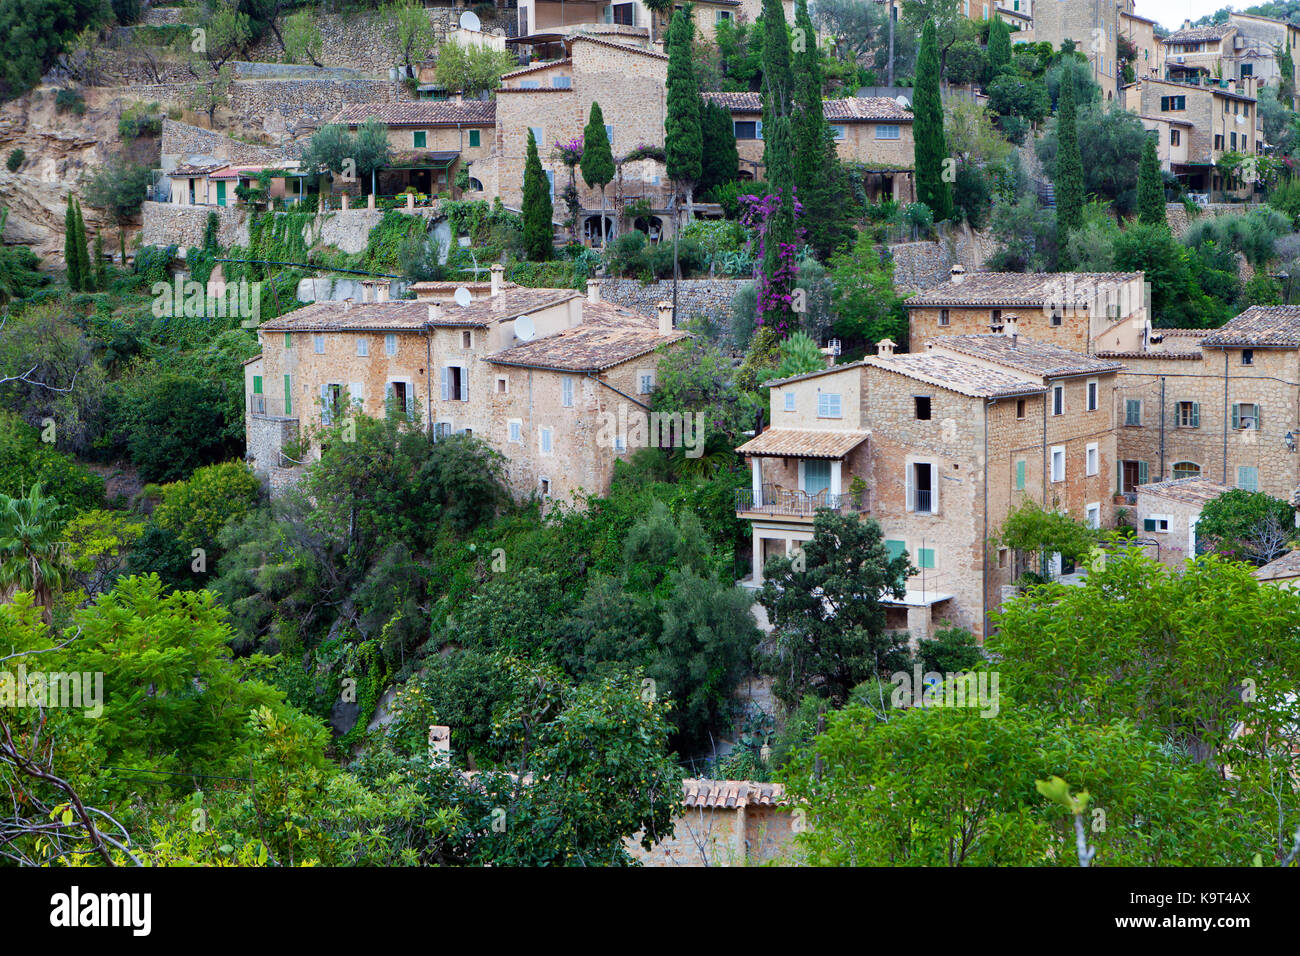 Deia village in Majorca, Spain - Stock Image